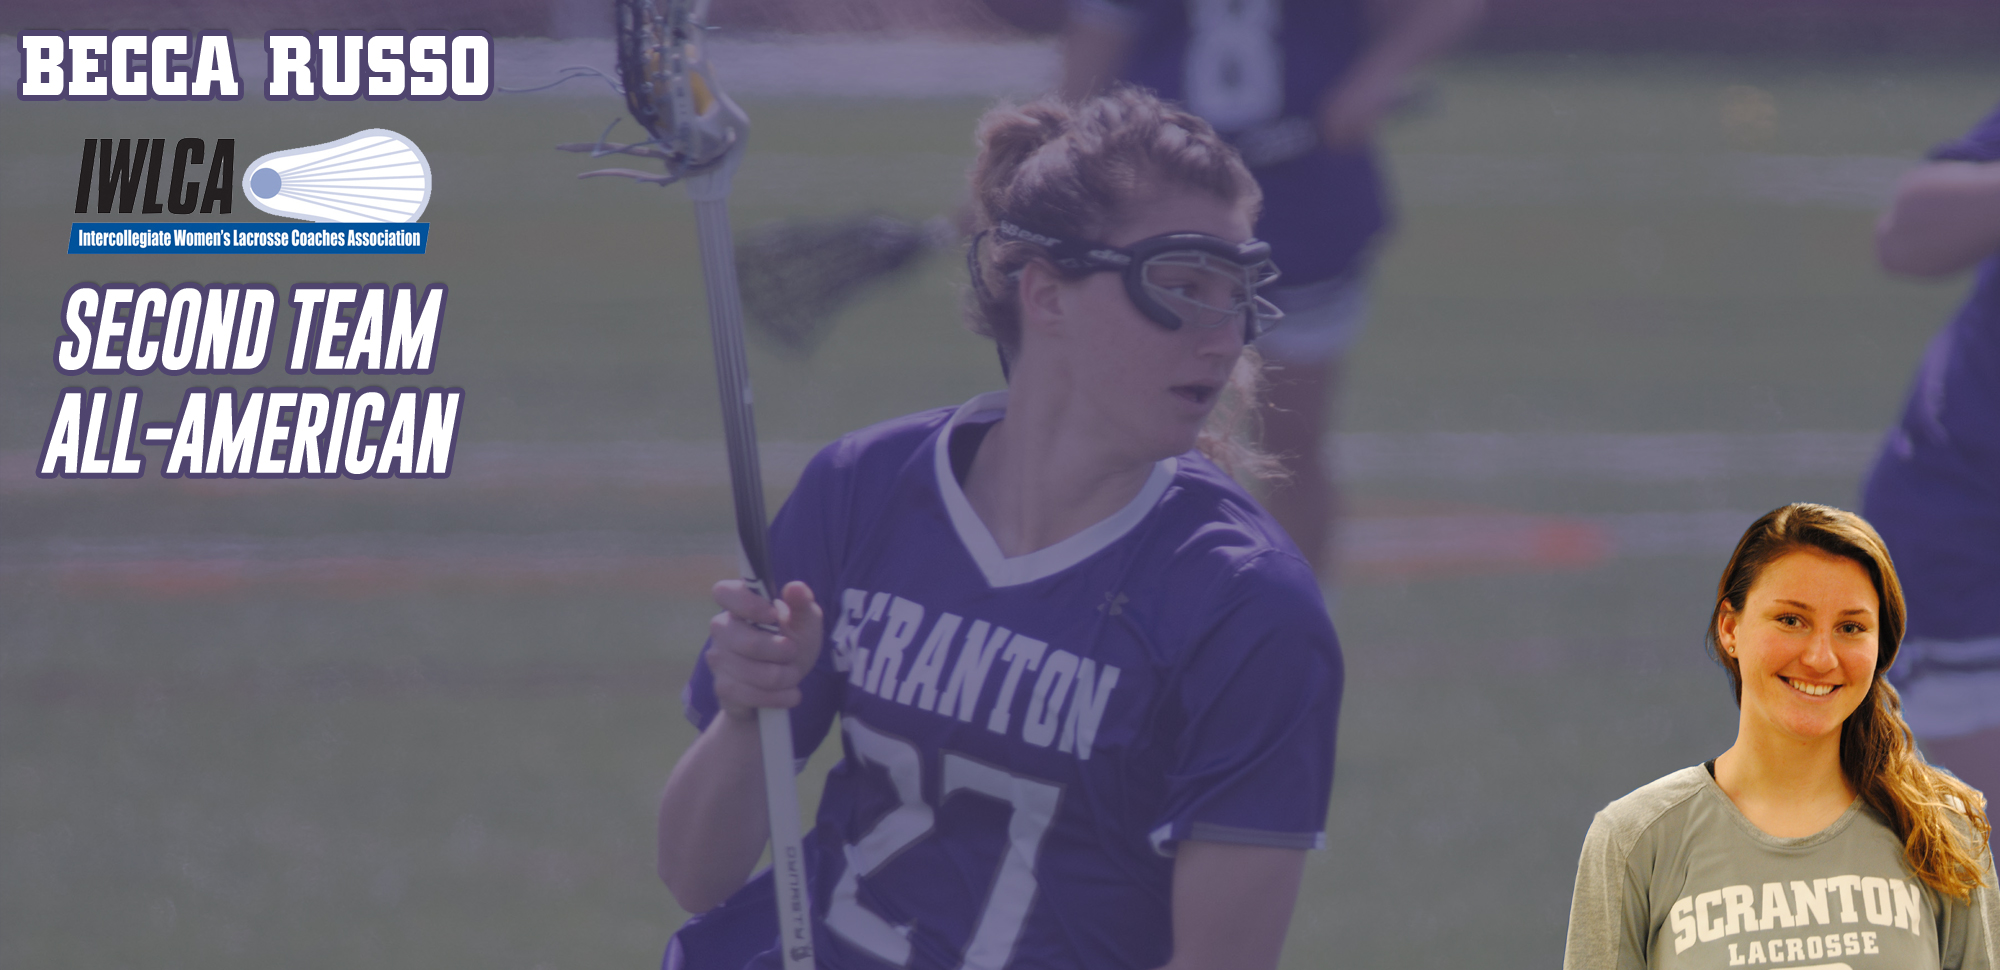 Becca Russo of Women's Lacrosse Named to IWLCA Division III All-American Team